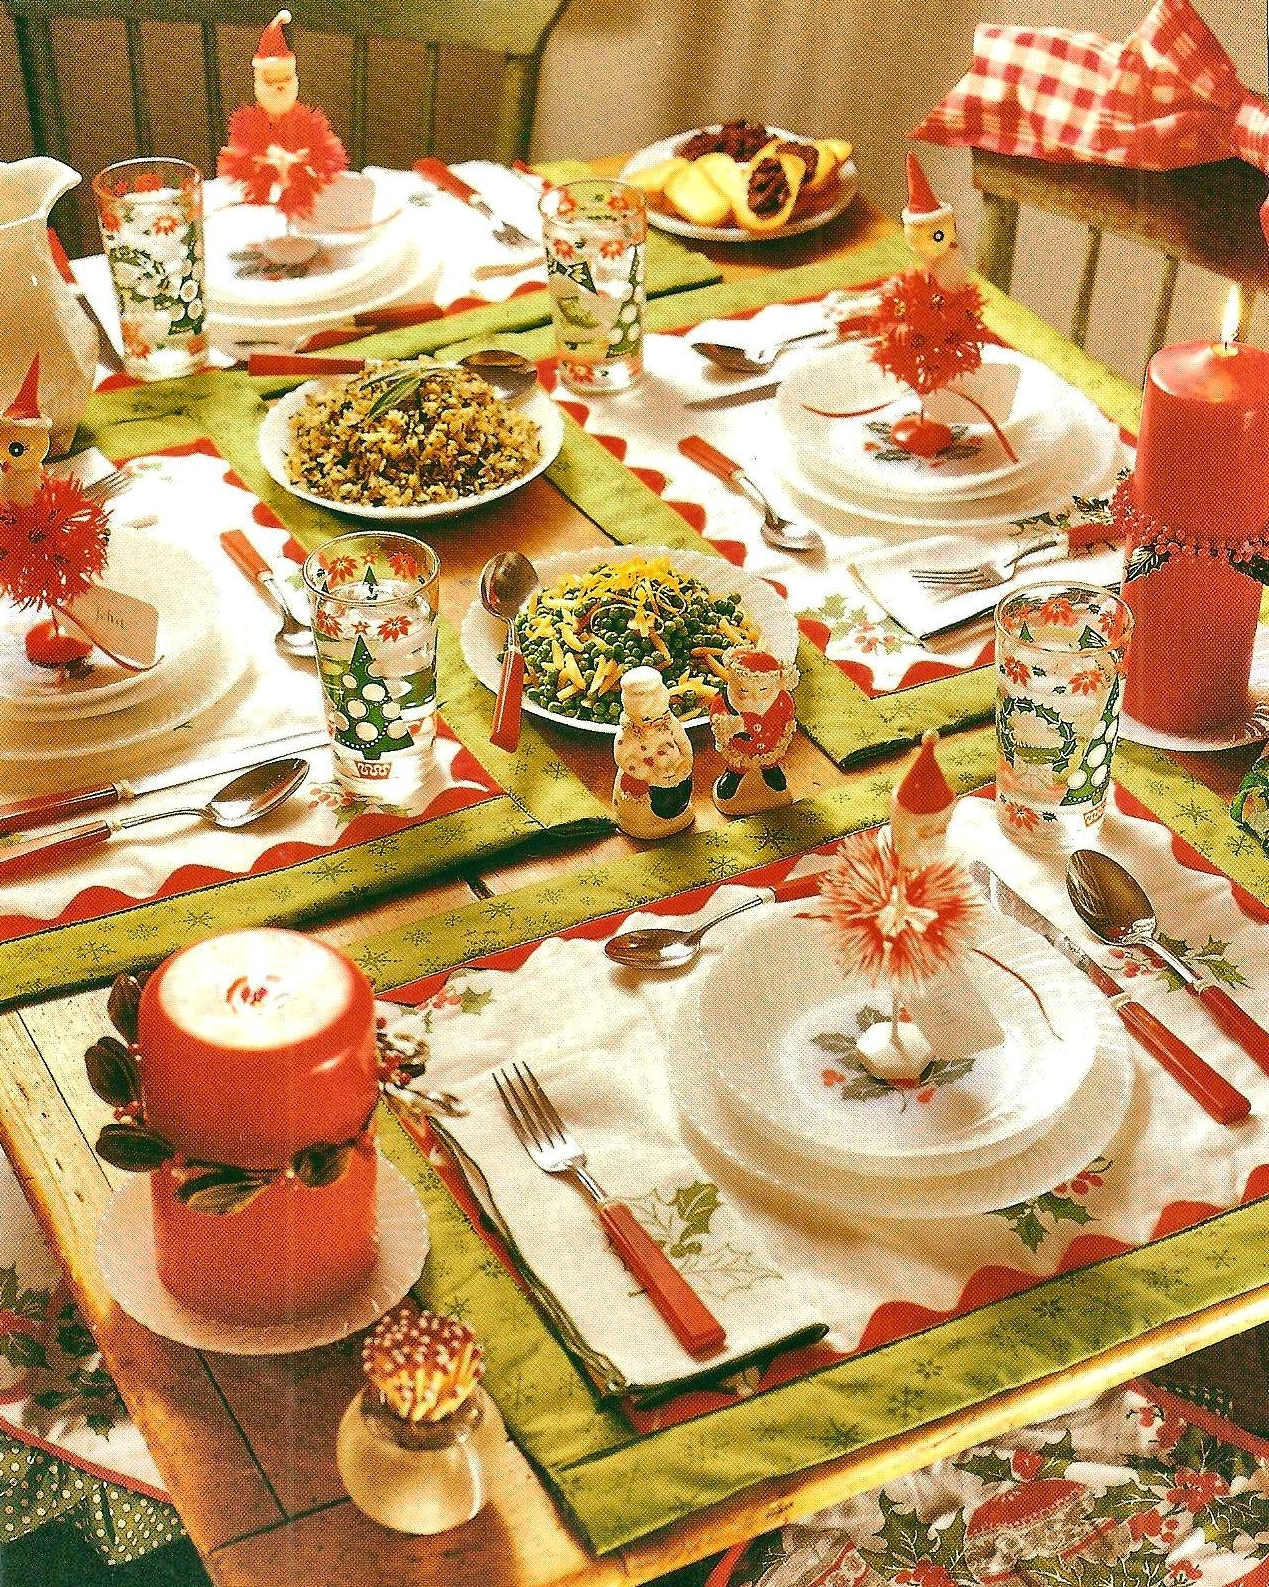 Fun Christmas Table Setting...and a Winner!  sc 1 st  Zettau0027s Aprons - Blogger & Zettau0027s Aprons: Fun Christmas Table Setting...and a Winner!